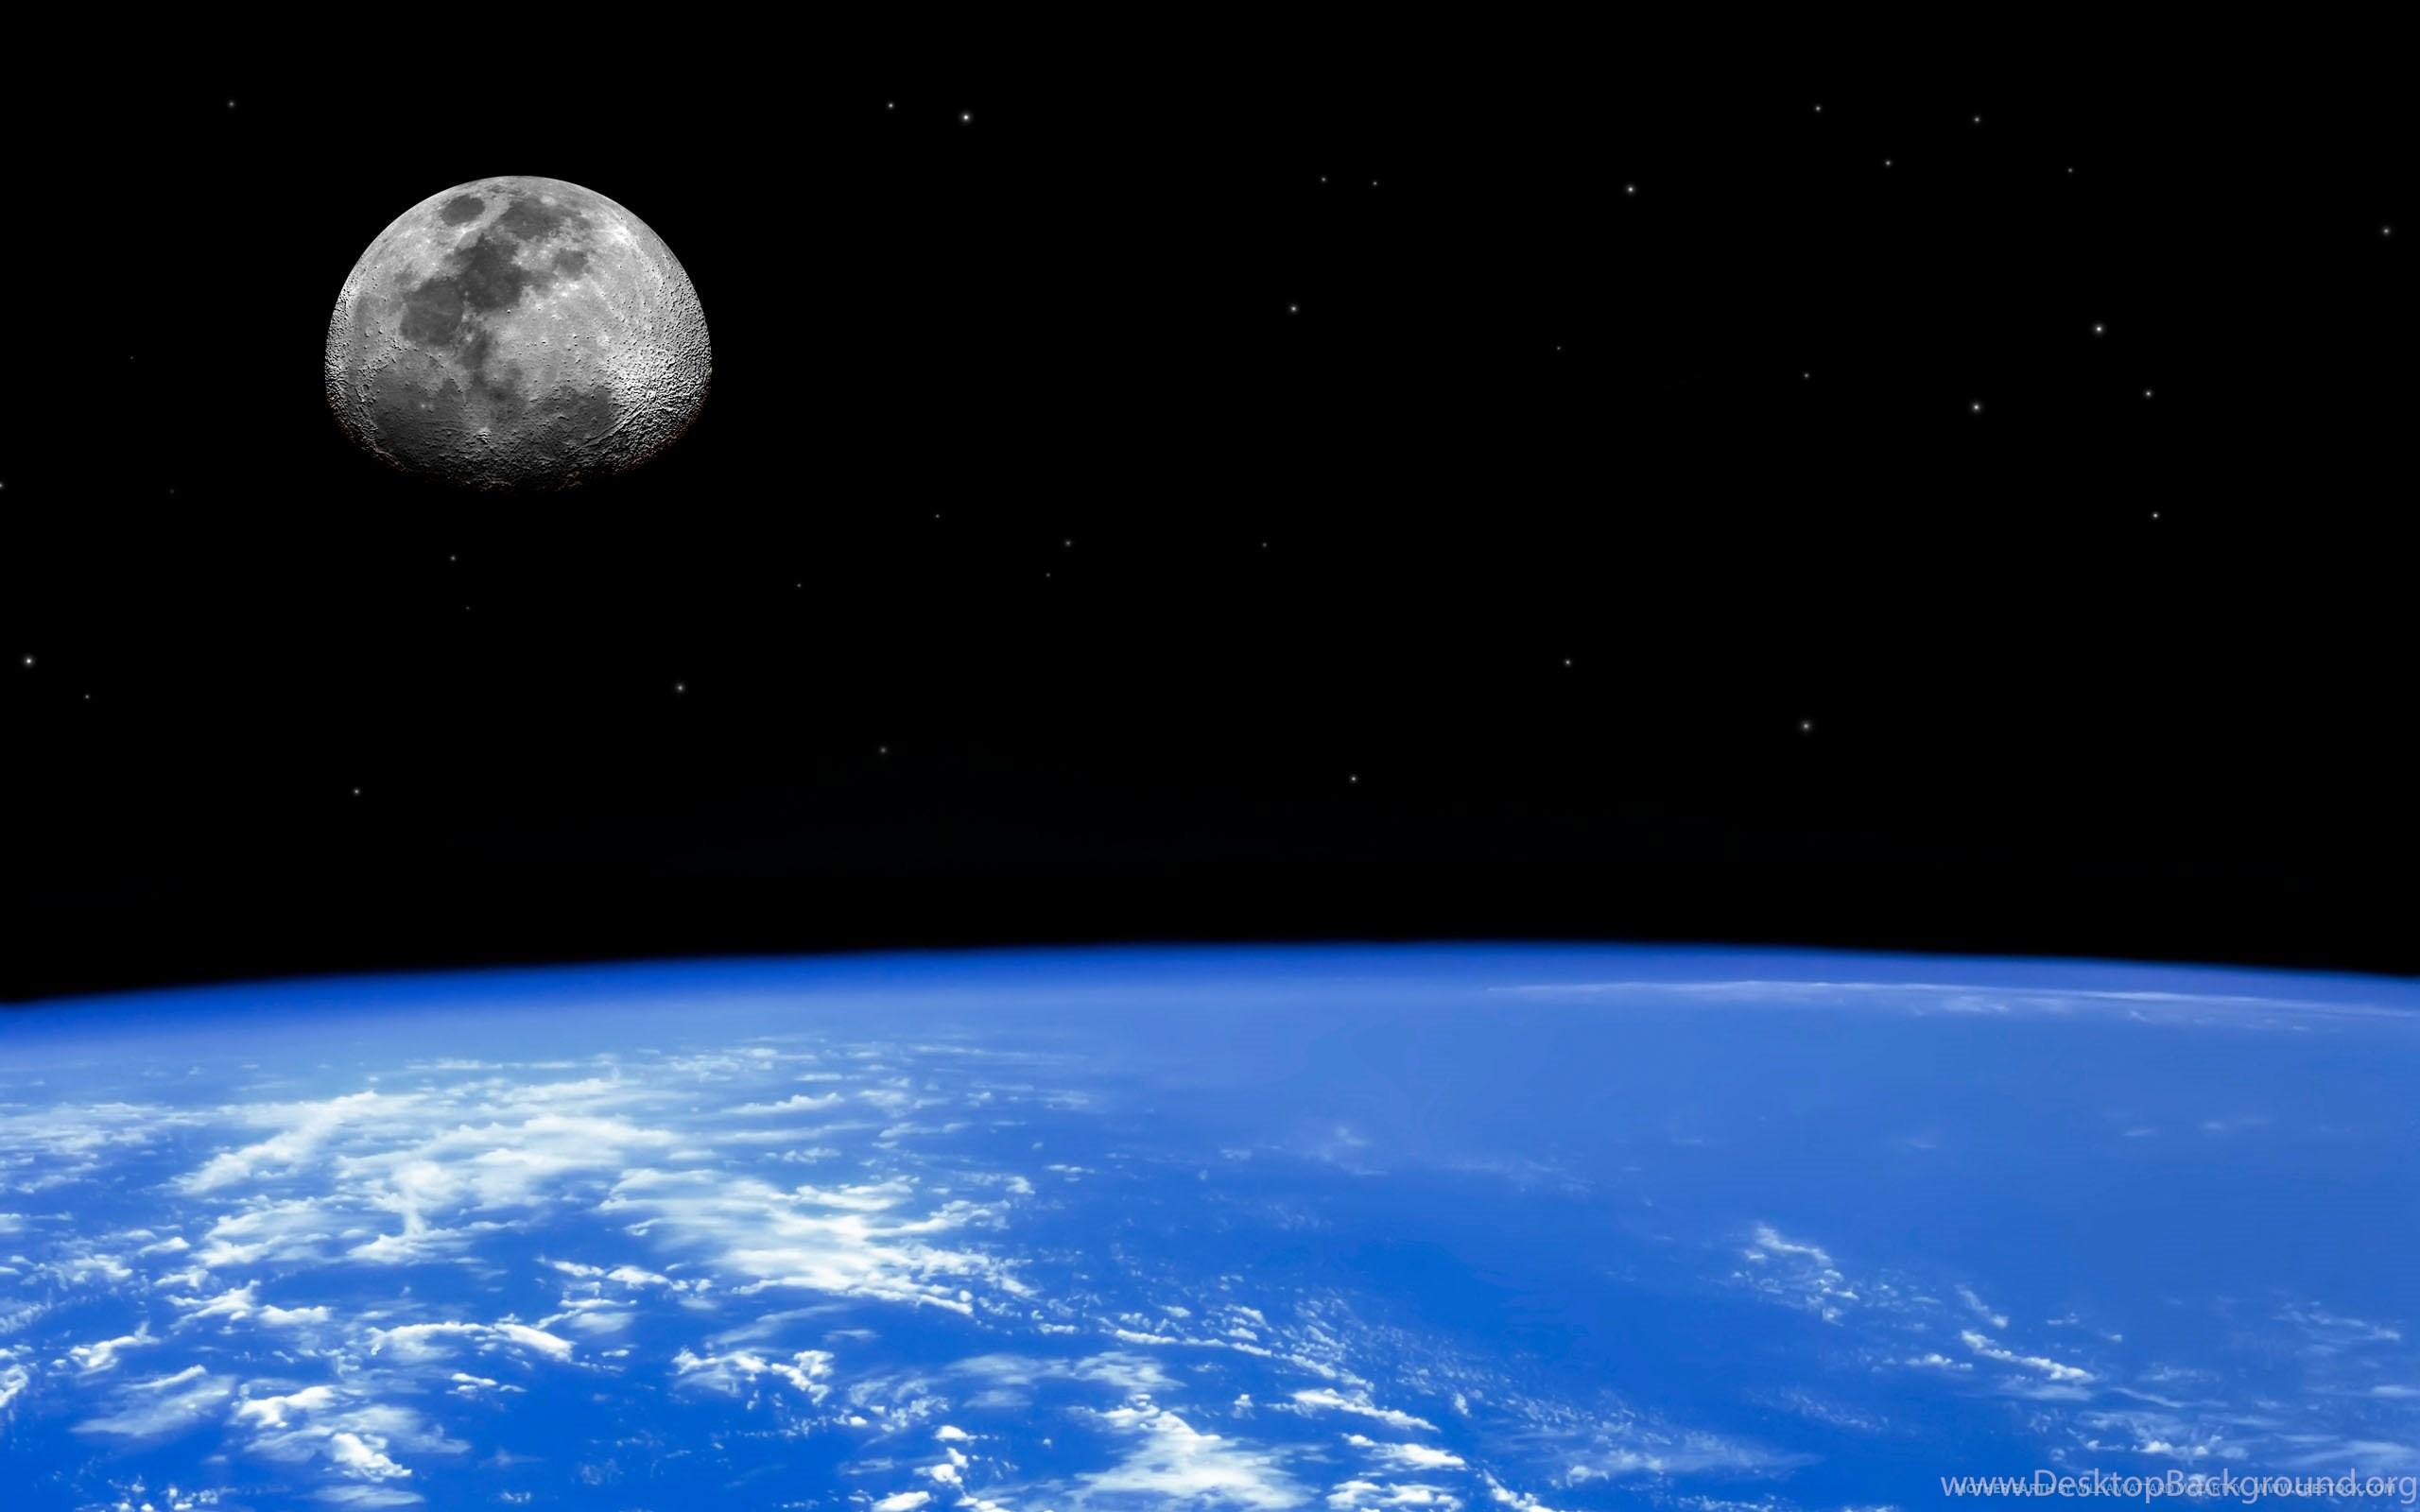 Real Images Of The Earth From Space Wallpapers Desktop Background